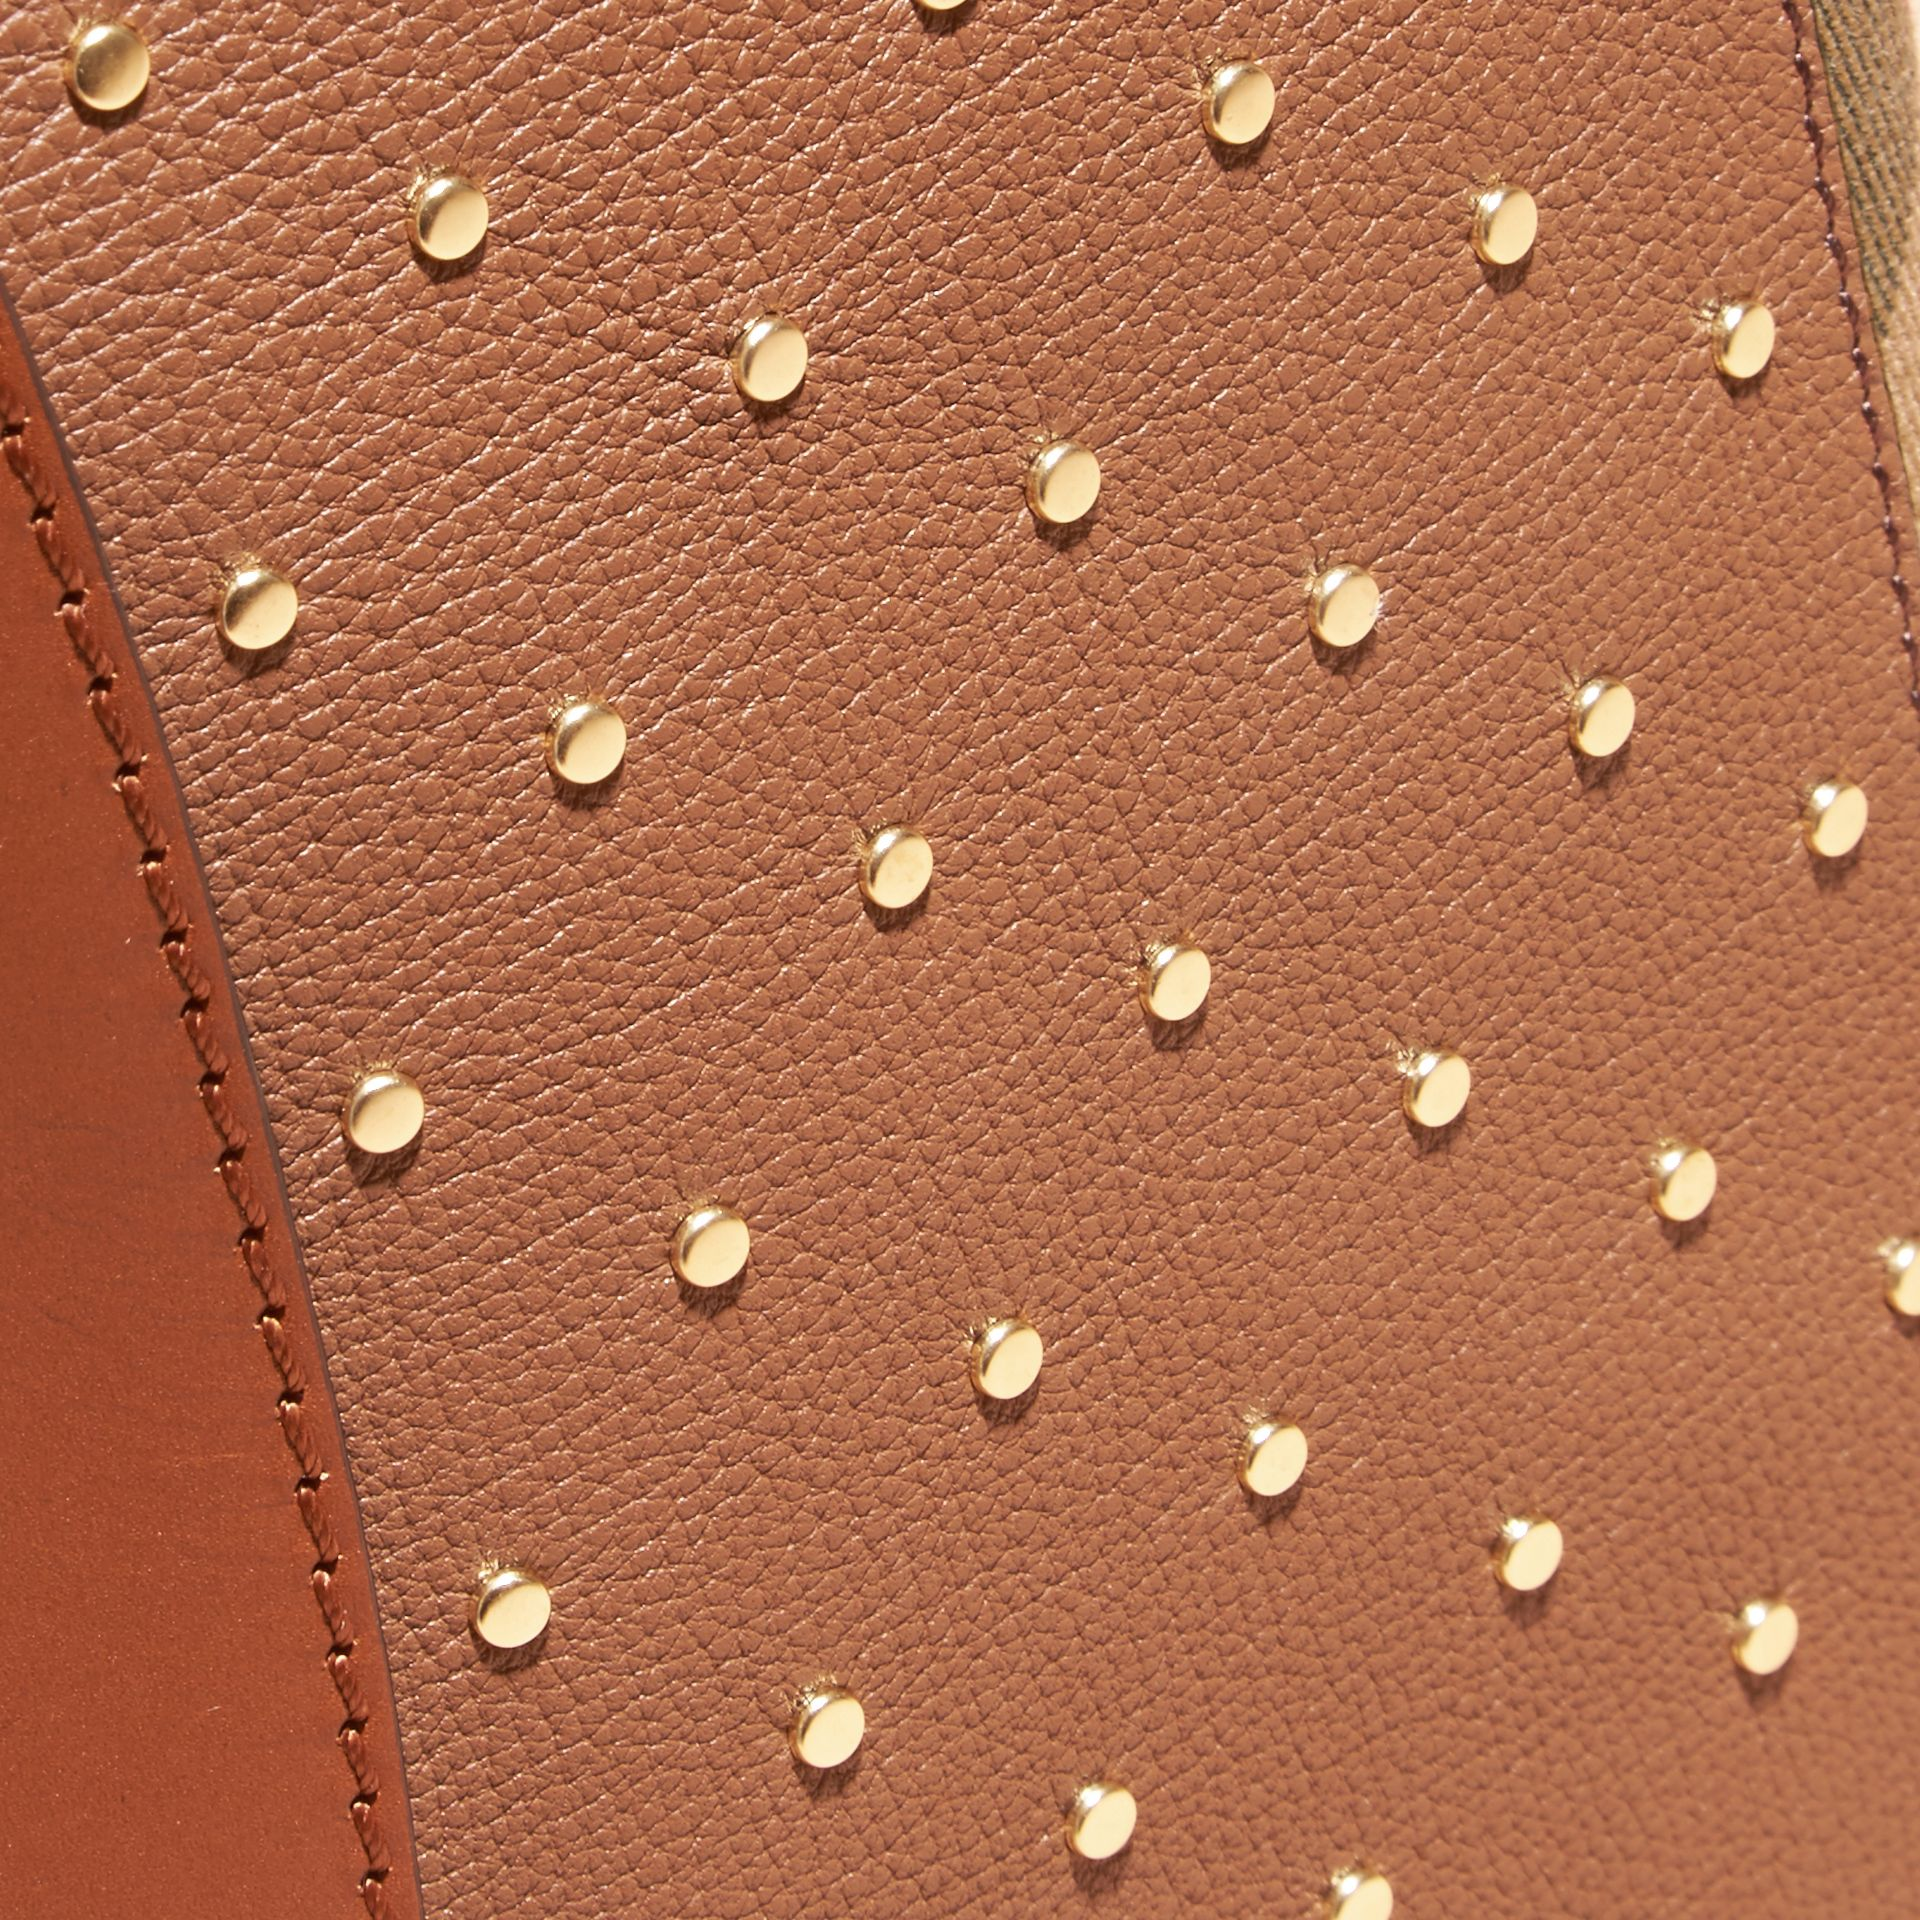 Riveted Leather and House Check Clutch Bag in Tan - gallery image 2